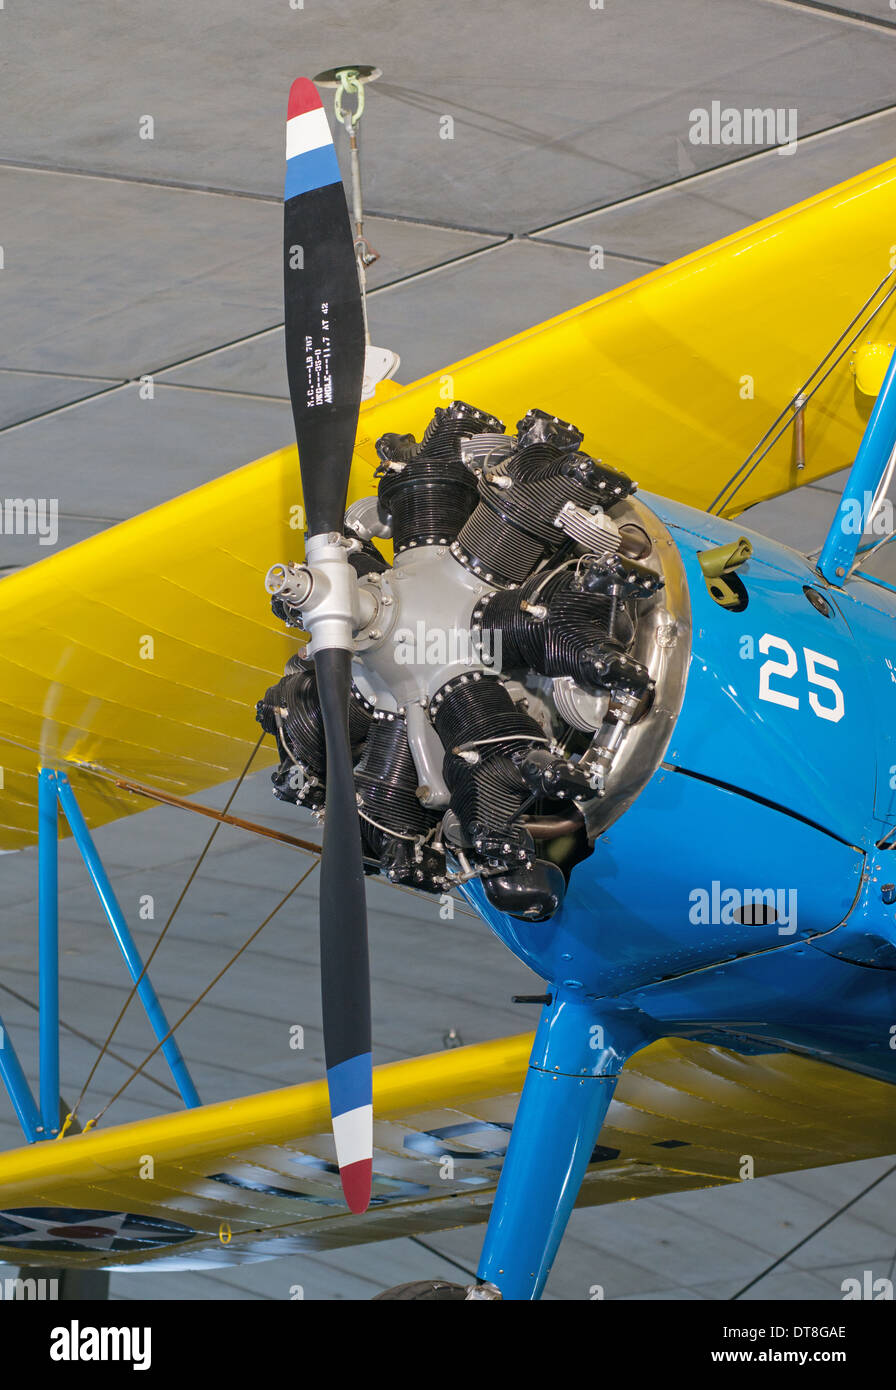 Boeing Stearman PT-17  biplane fitted with a 7 cylinder radial aero engine Duxford Imperial war museum Museum England UK - Stock Image